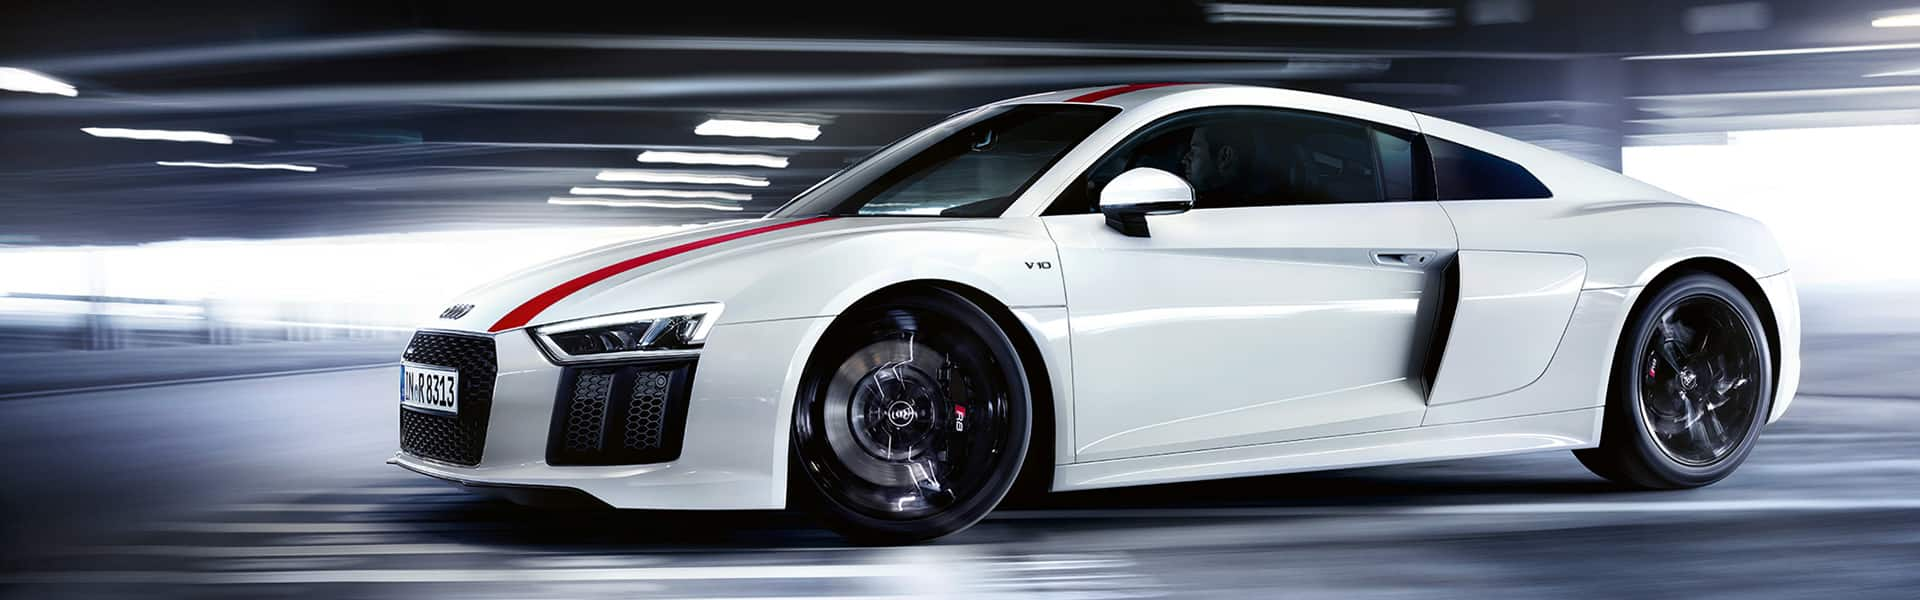 The new Audi R8 Coupé V10 RWS.